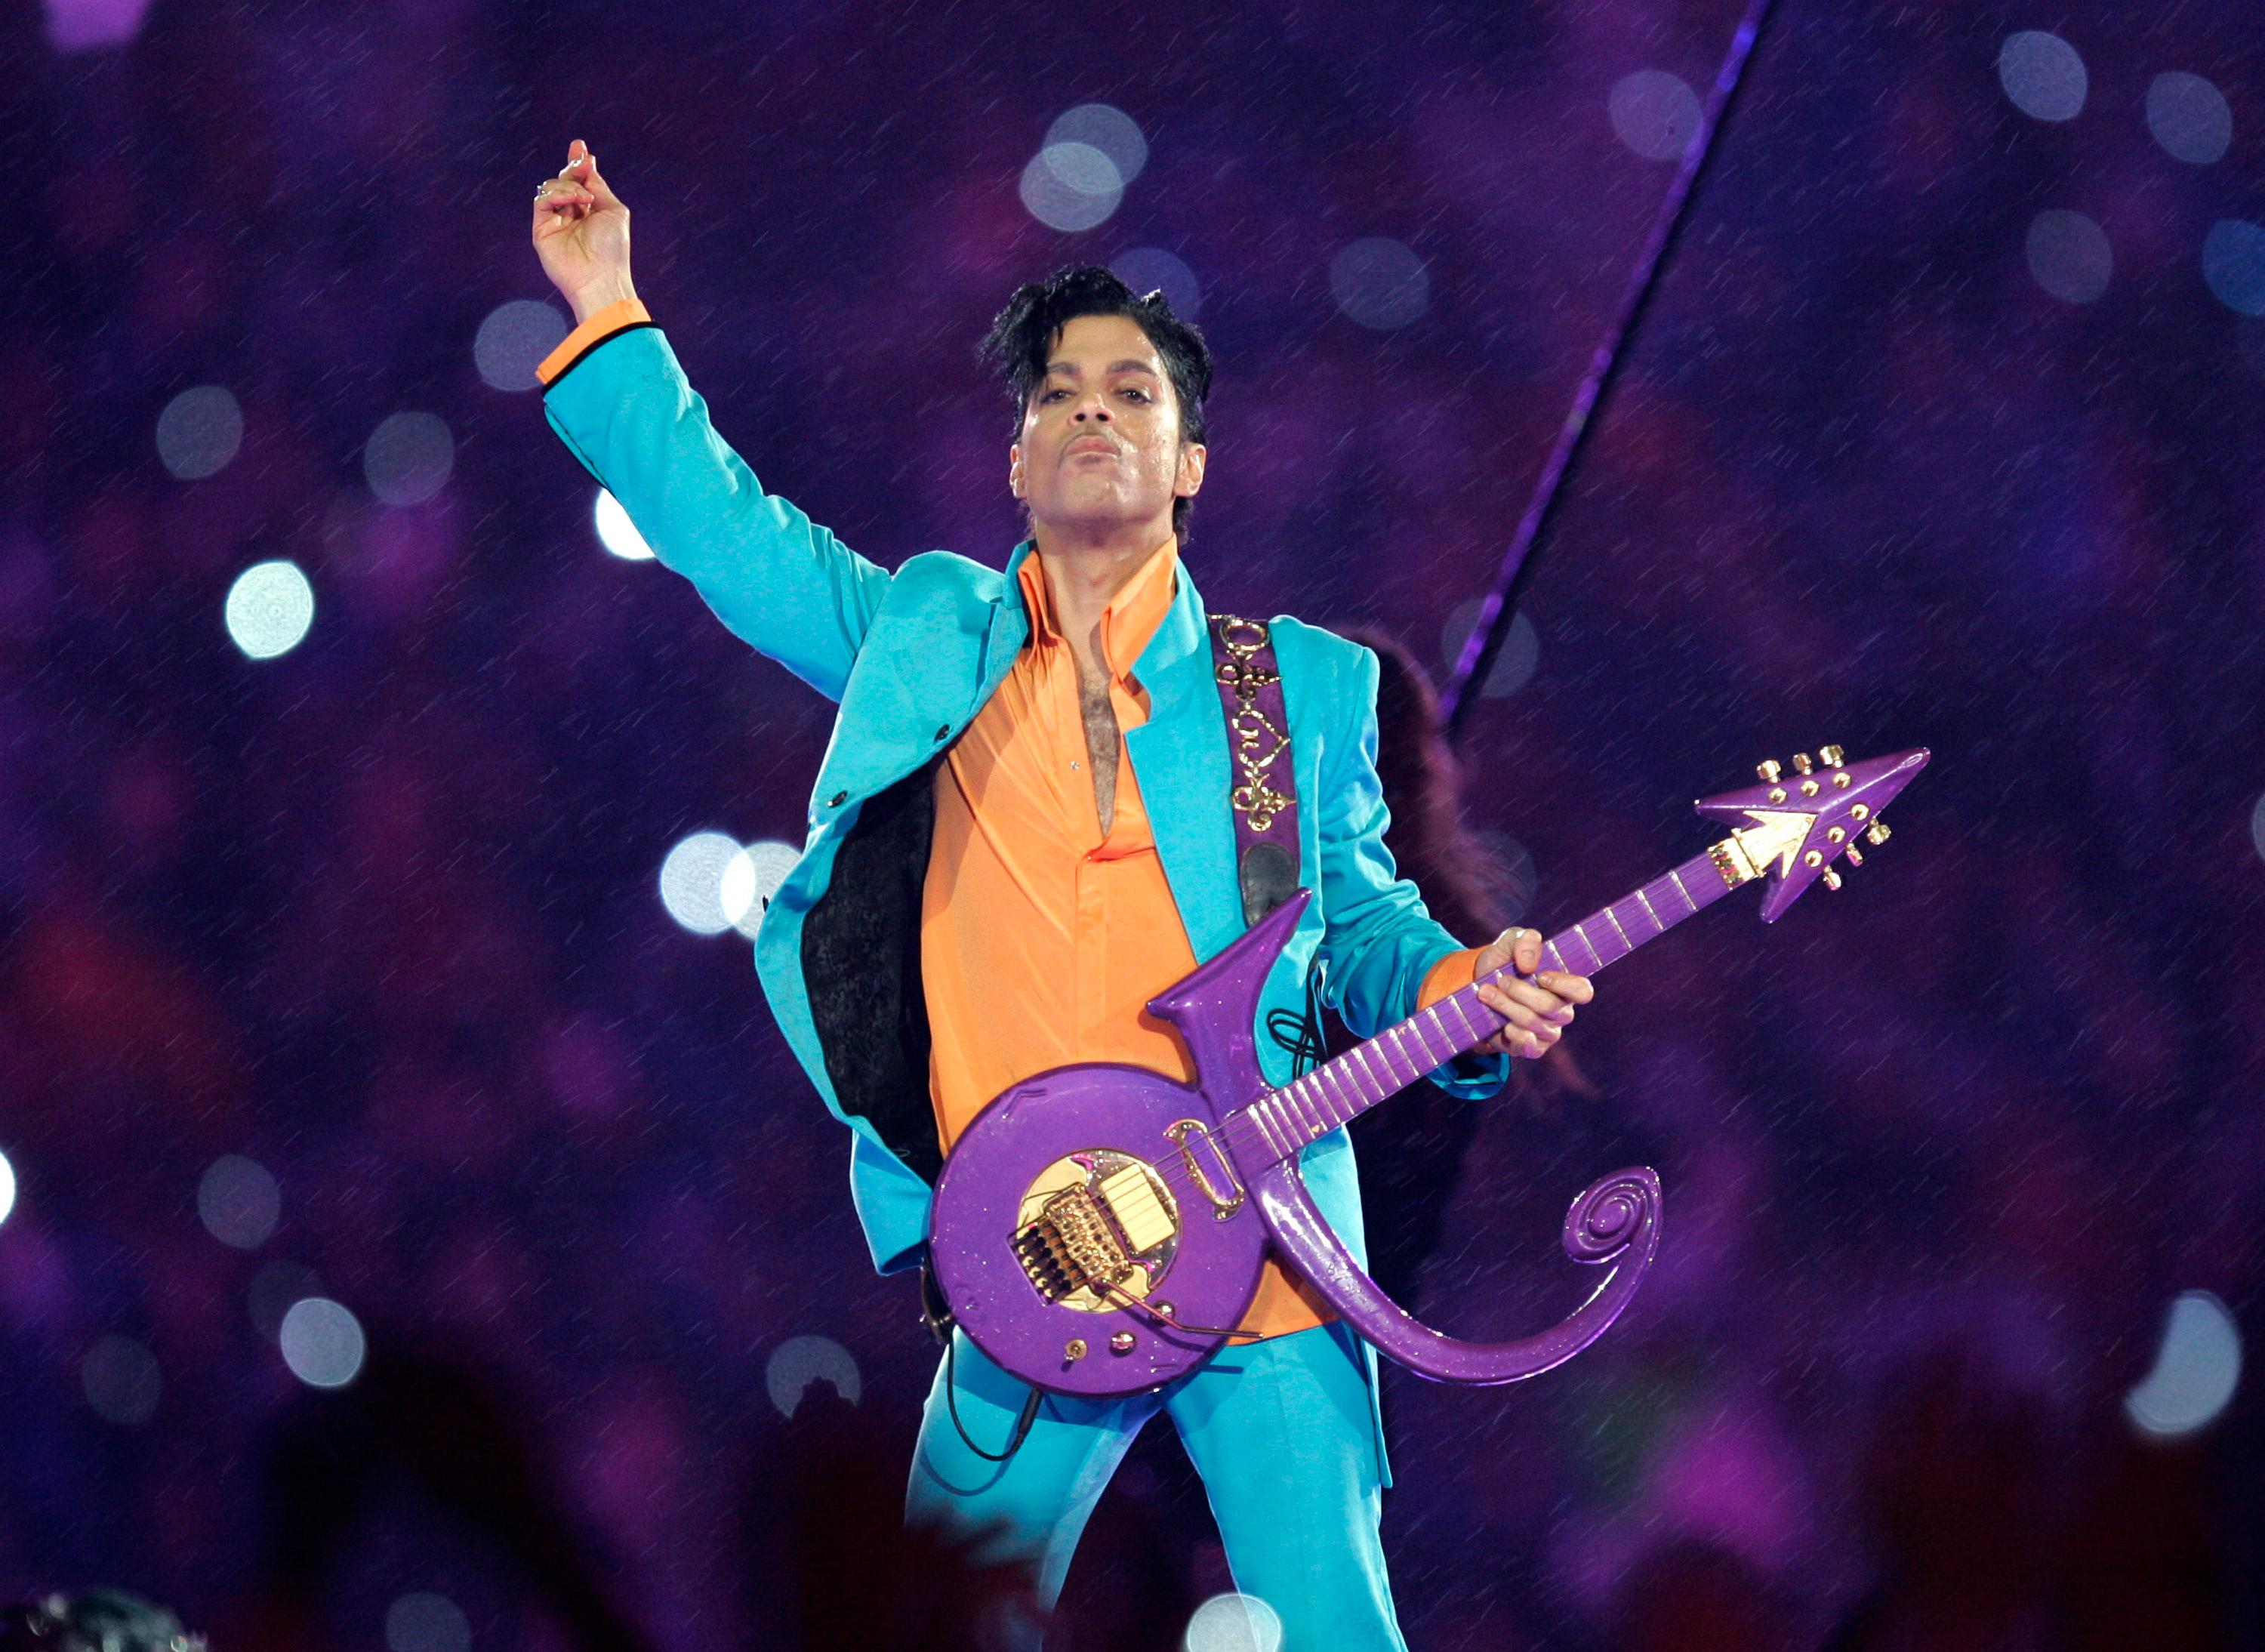 FILE - In this Feb. 4, 2007, file photo, Prince performs during the halftime show at the Super Bowl XLI NFL football game at Dolphin Stadium in Miami. Prince died at his home in Chanhassen, Minn. on April 21, 2016 at the age of 57. (AP Photo/Chris O'Meara, File)